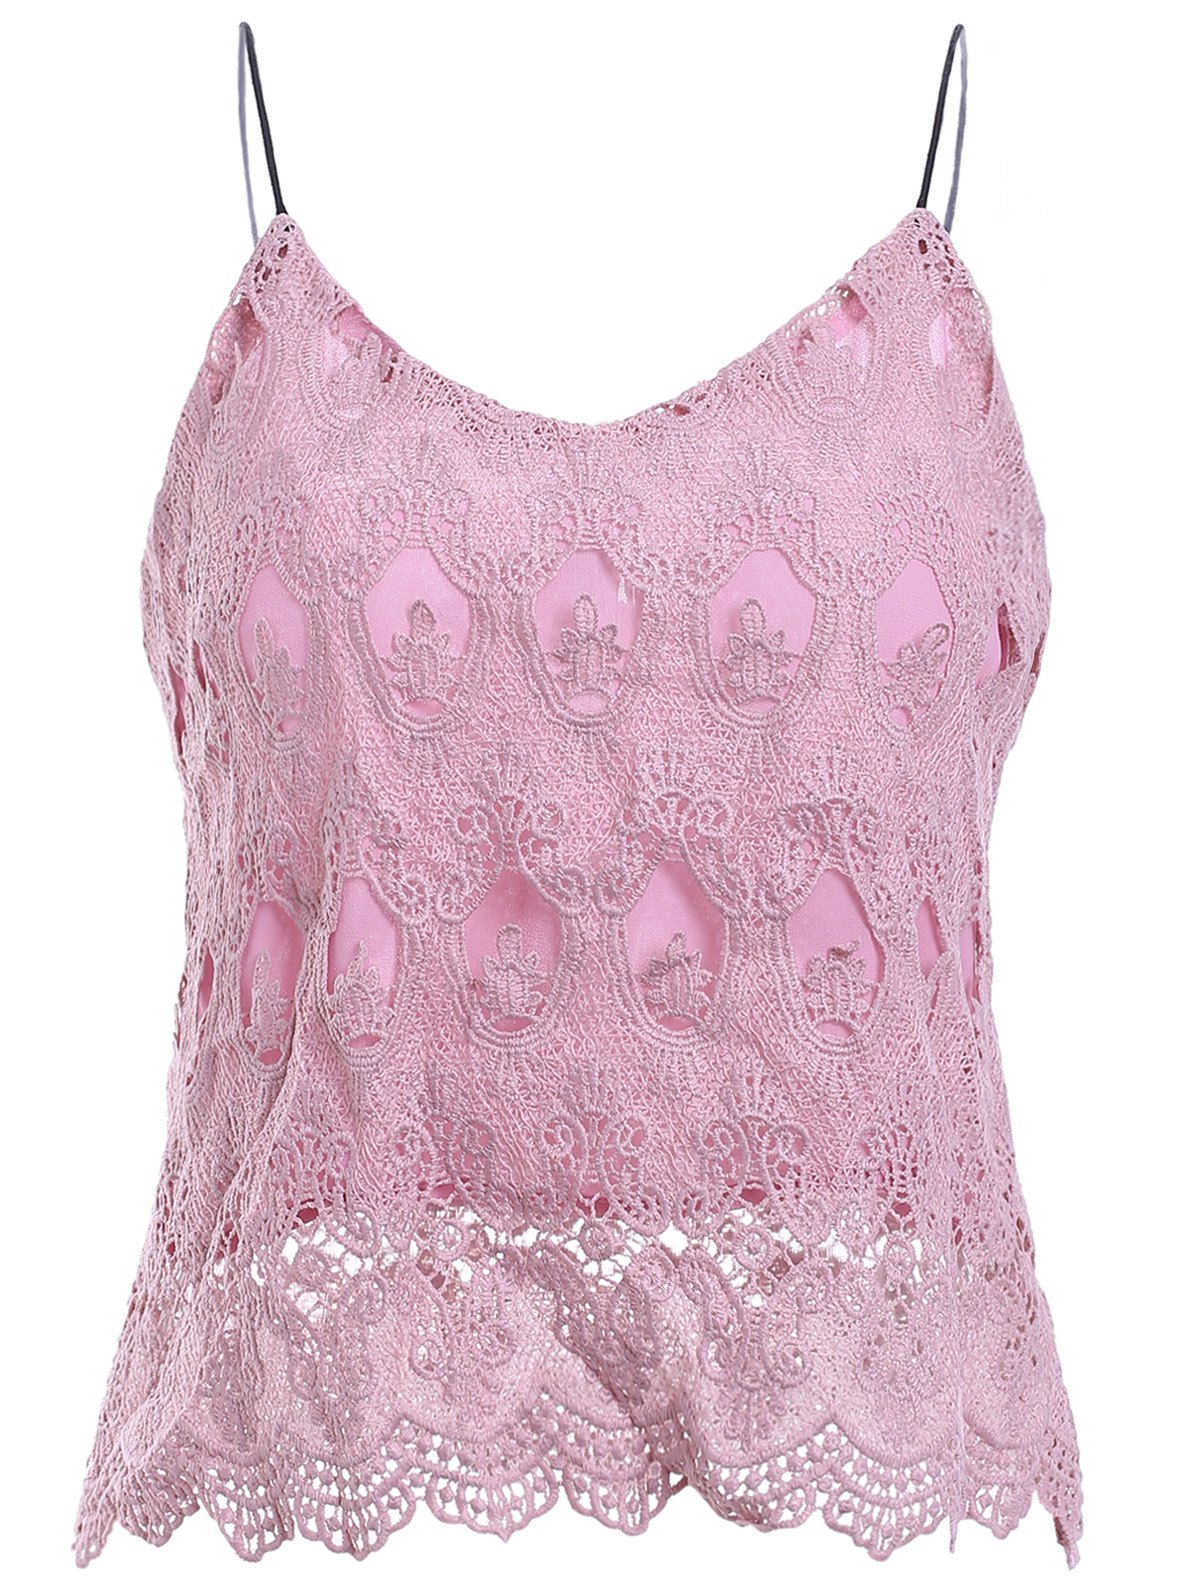 Fashionable Women's V-Neck Spaghetti Strap Lace Top - PINK ONE SIZE(FIT SIZE XS TO M)